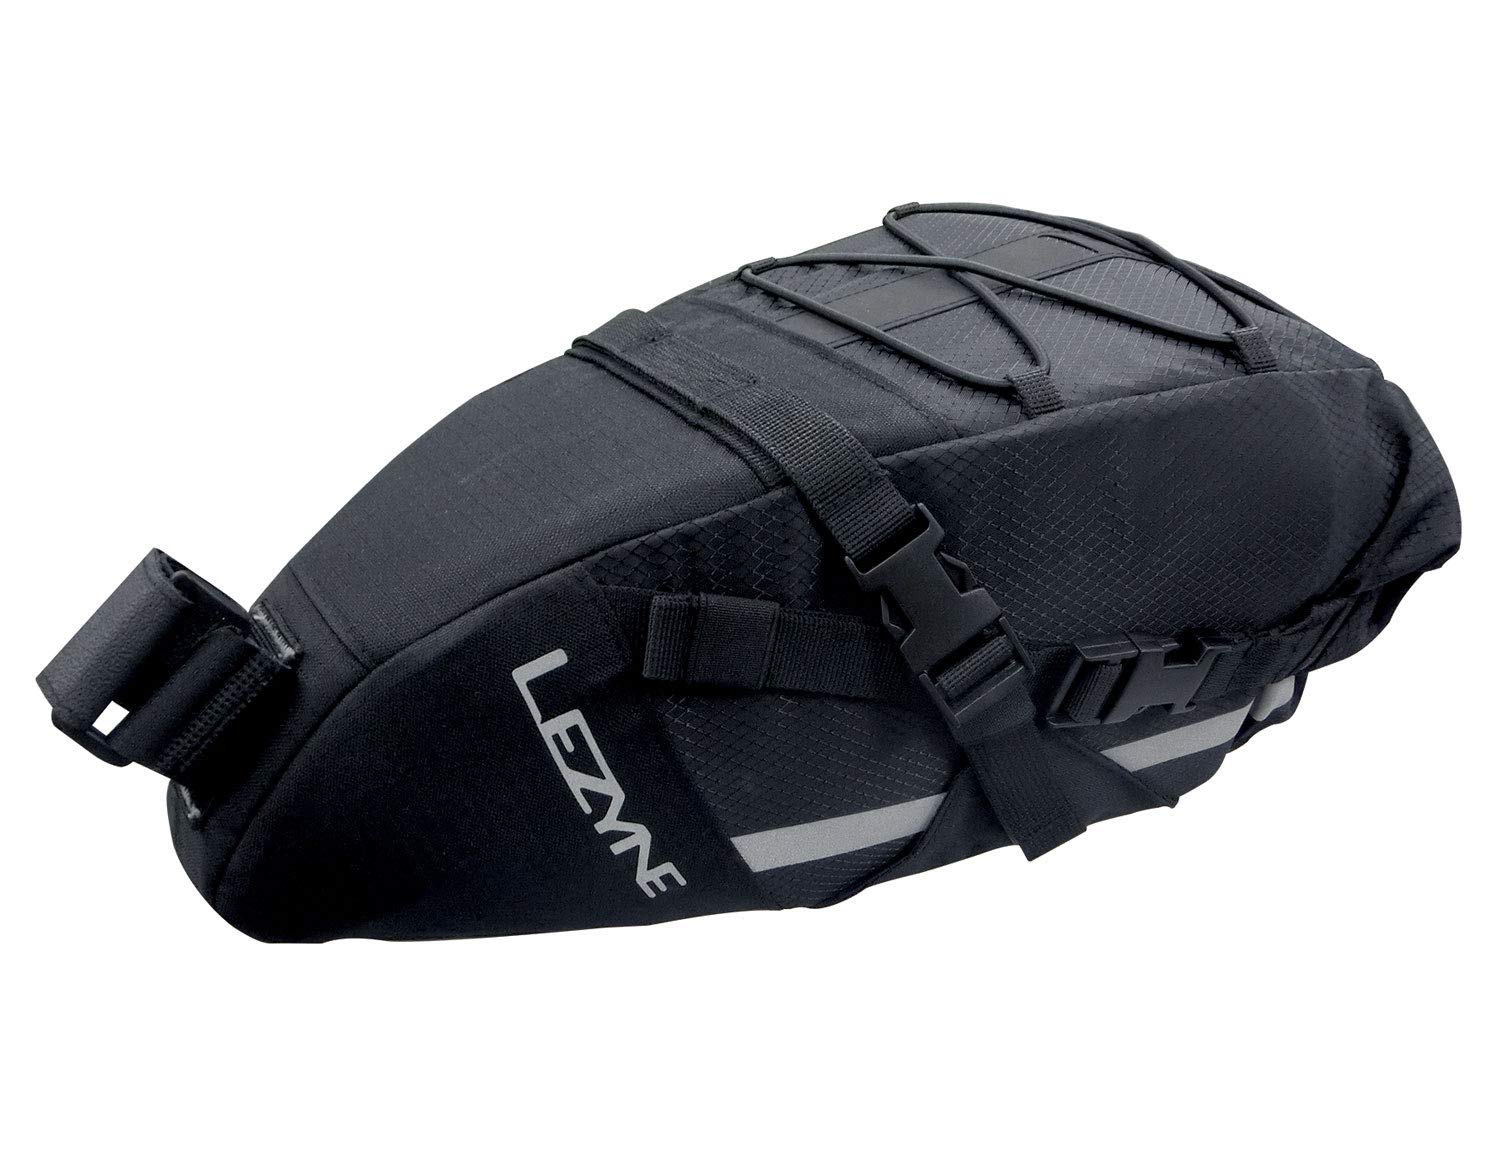 LEZYNE XL Bicycle Caddy Saddle Bag, Extra Large, Securely Mounts to Seat Post, Durable, Light Mounts, Water Resistant, Large Bike Caddy Bag